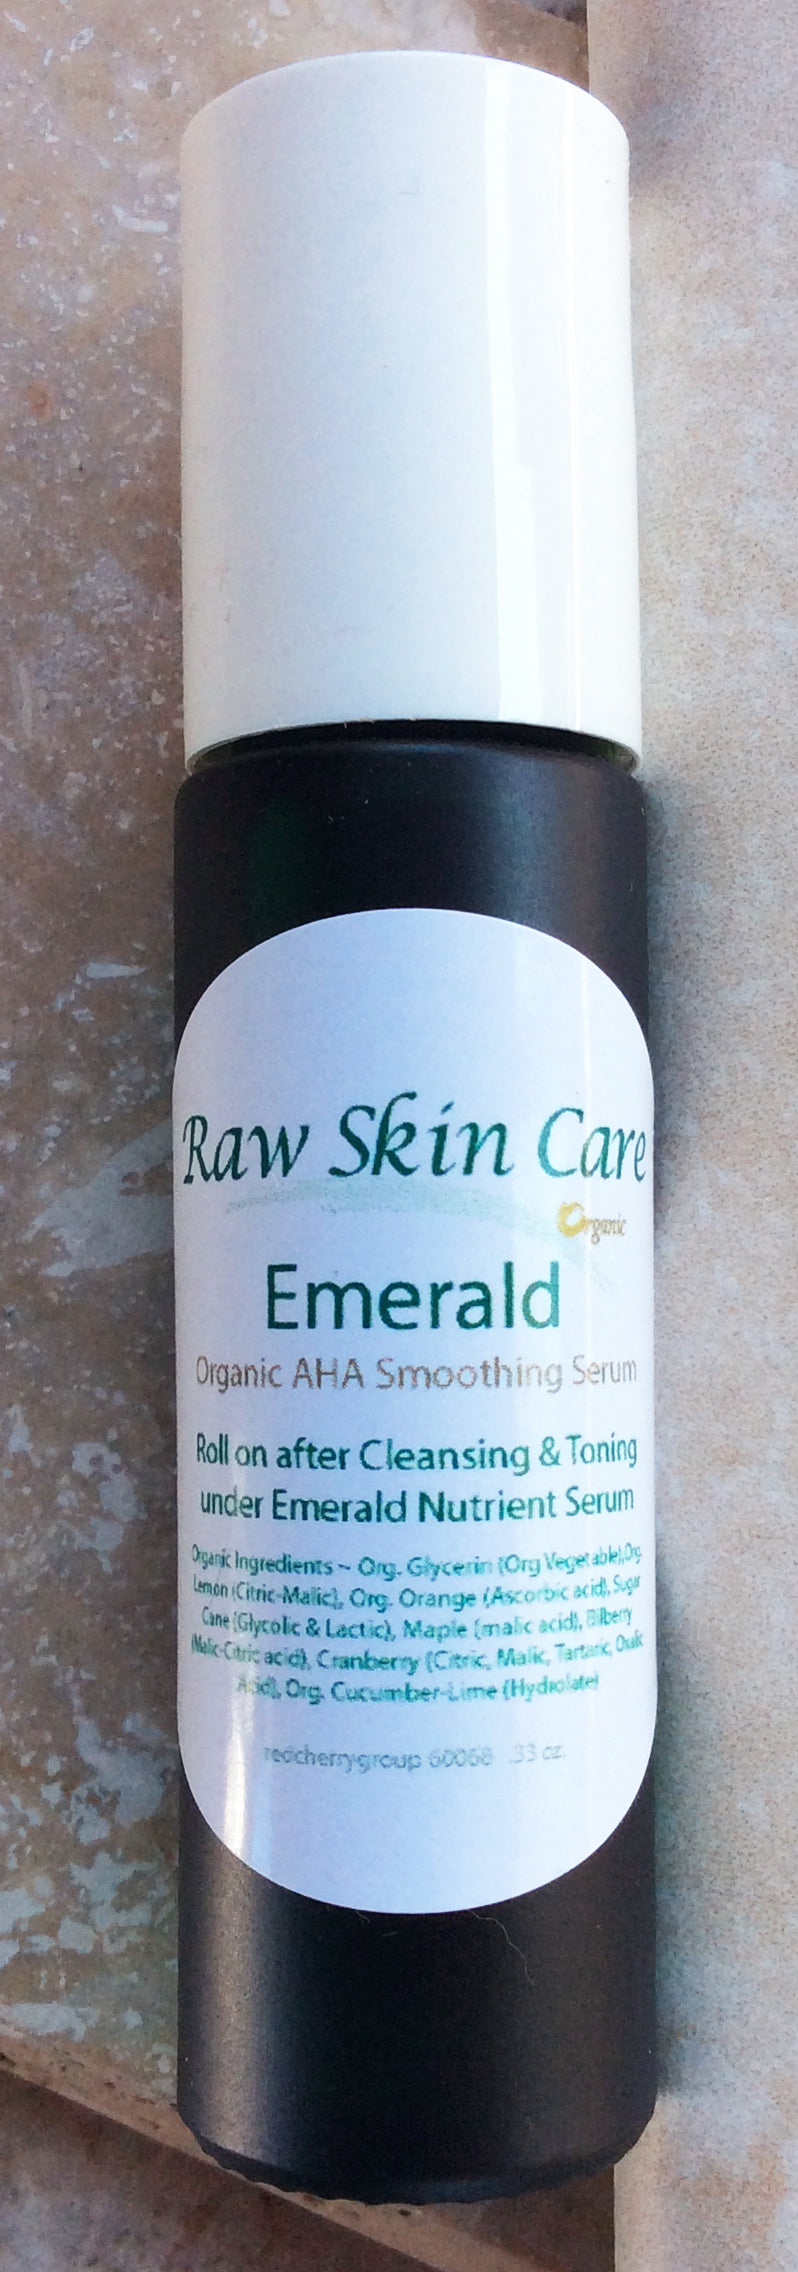 Emerald Organic AHA Exfoliation .45oz. Serum for All Skin